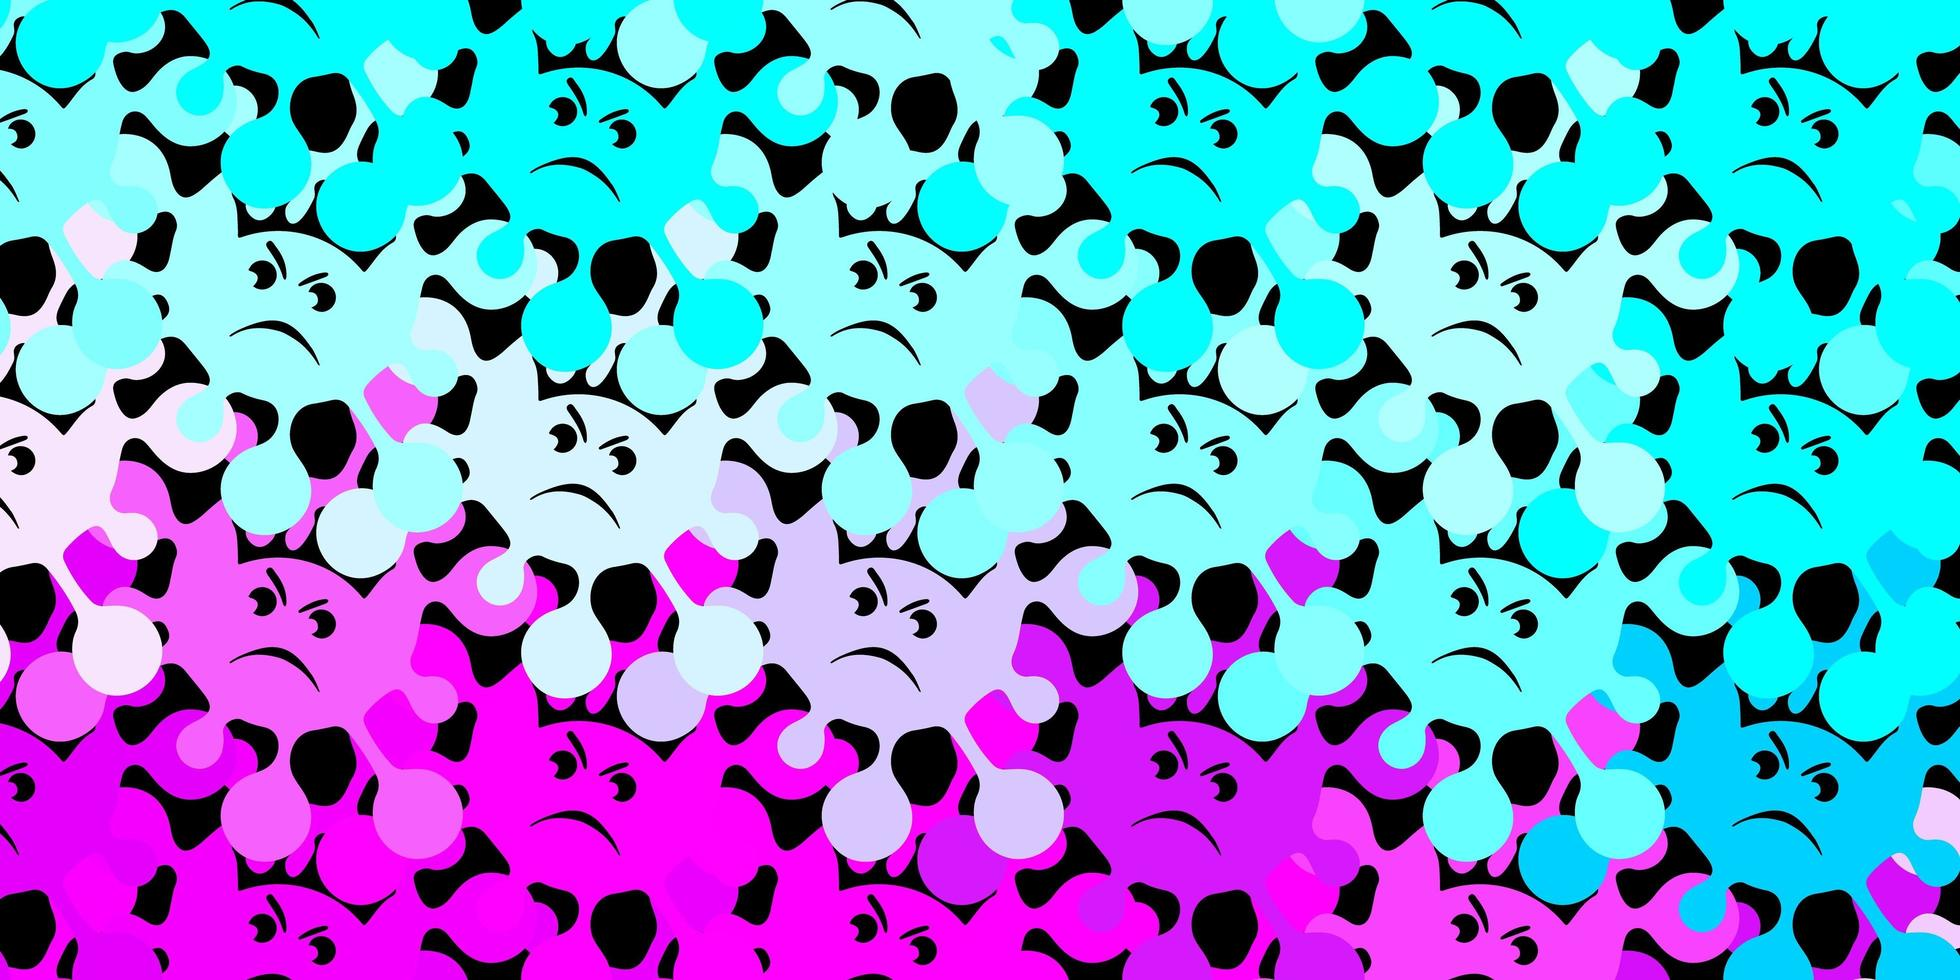 Dark pink, blue vector background with covid-19 symbols.